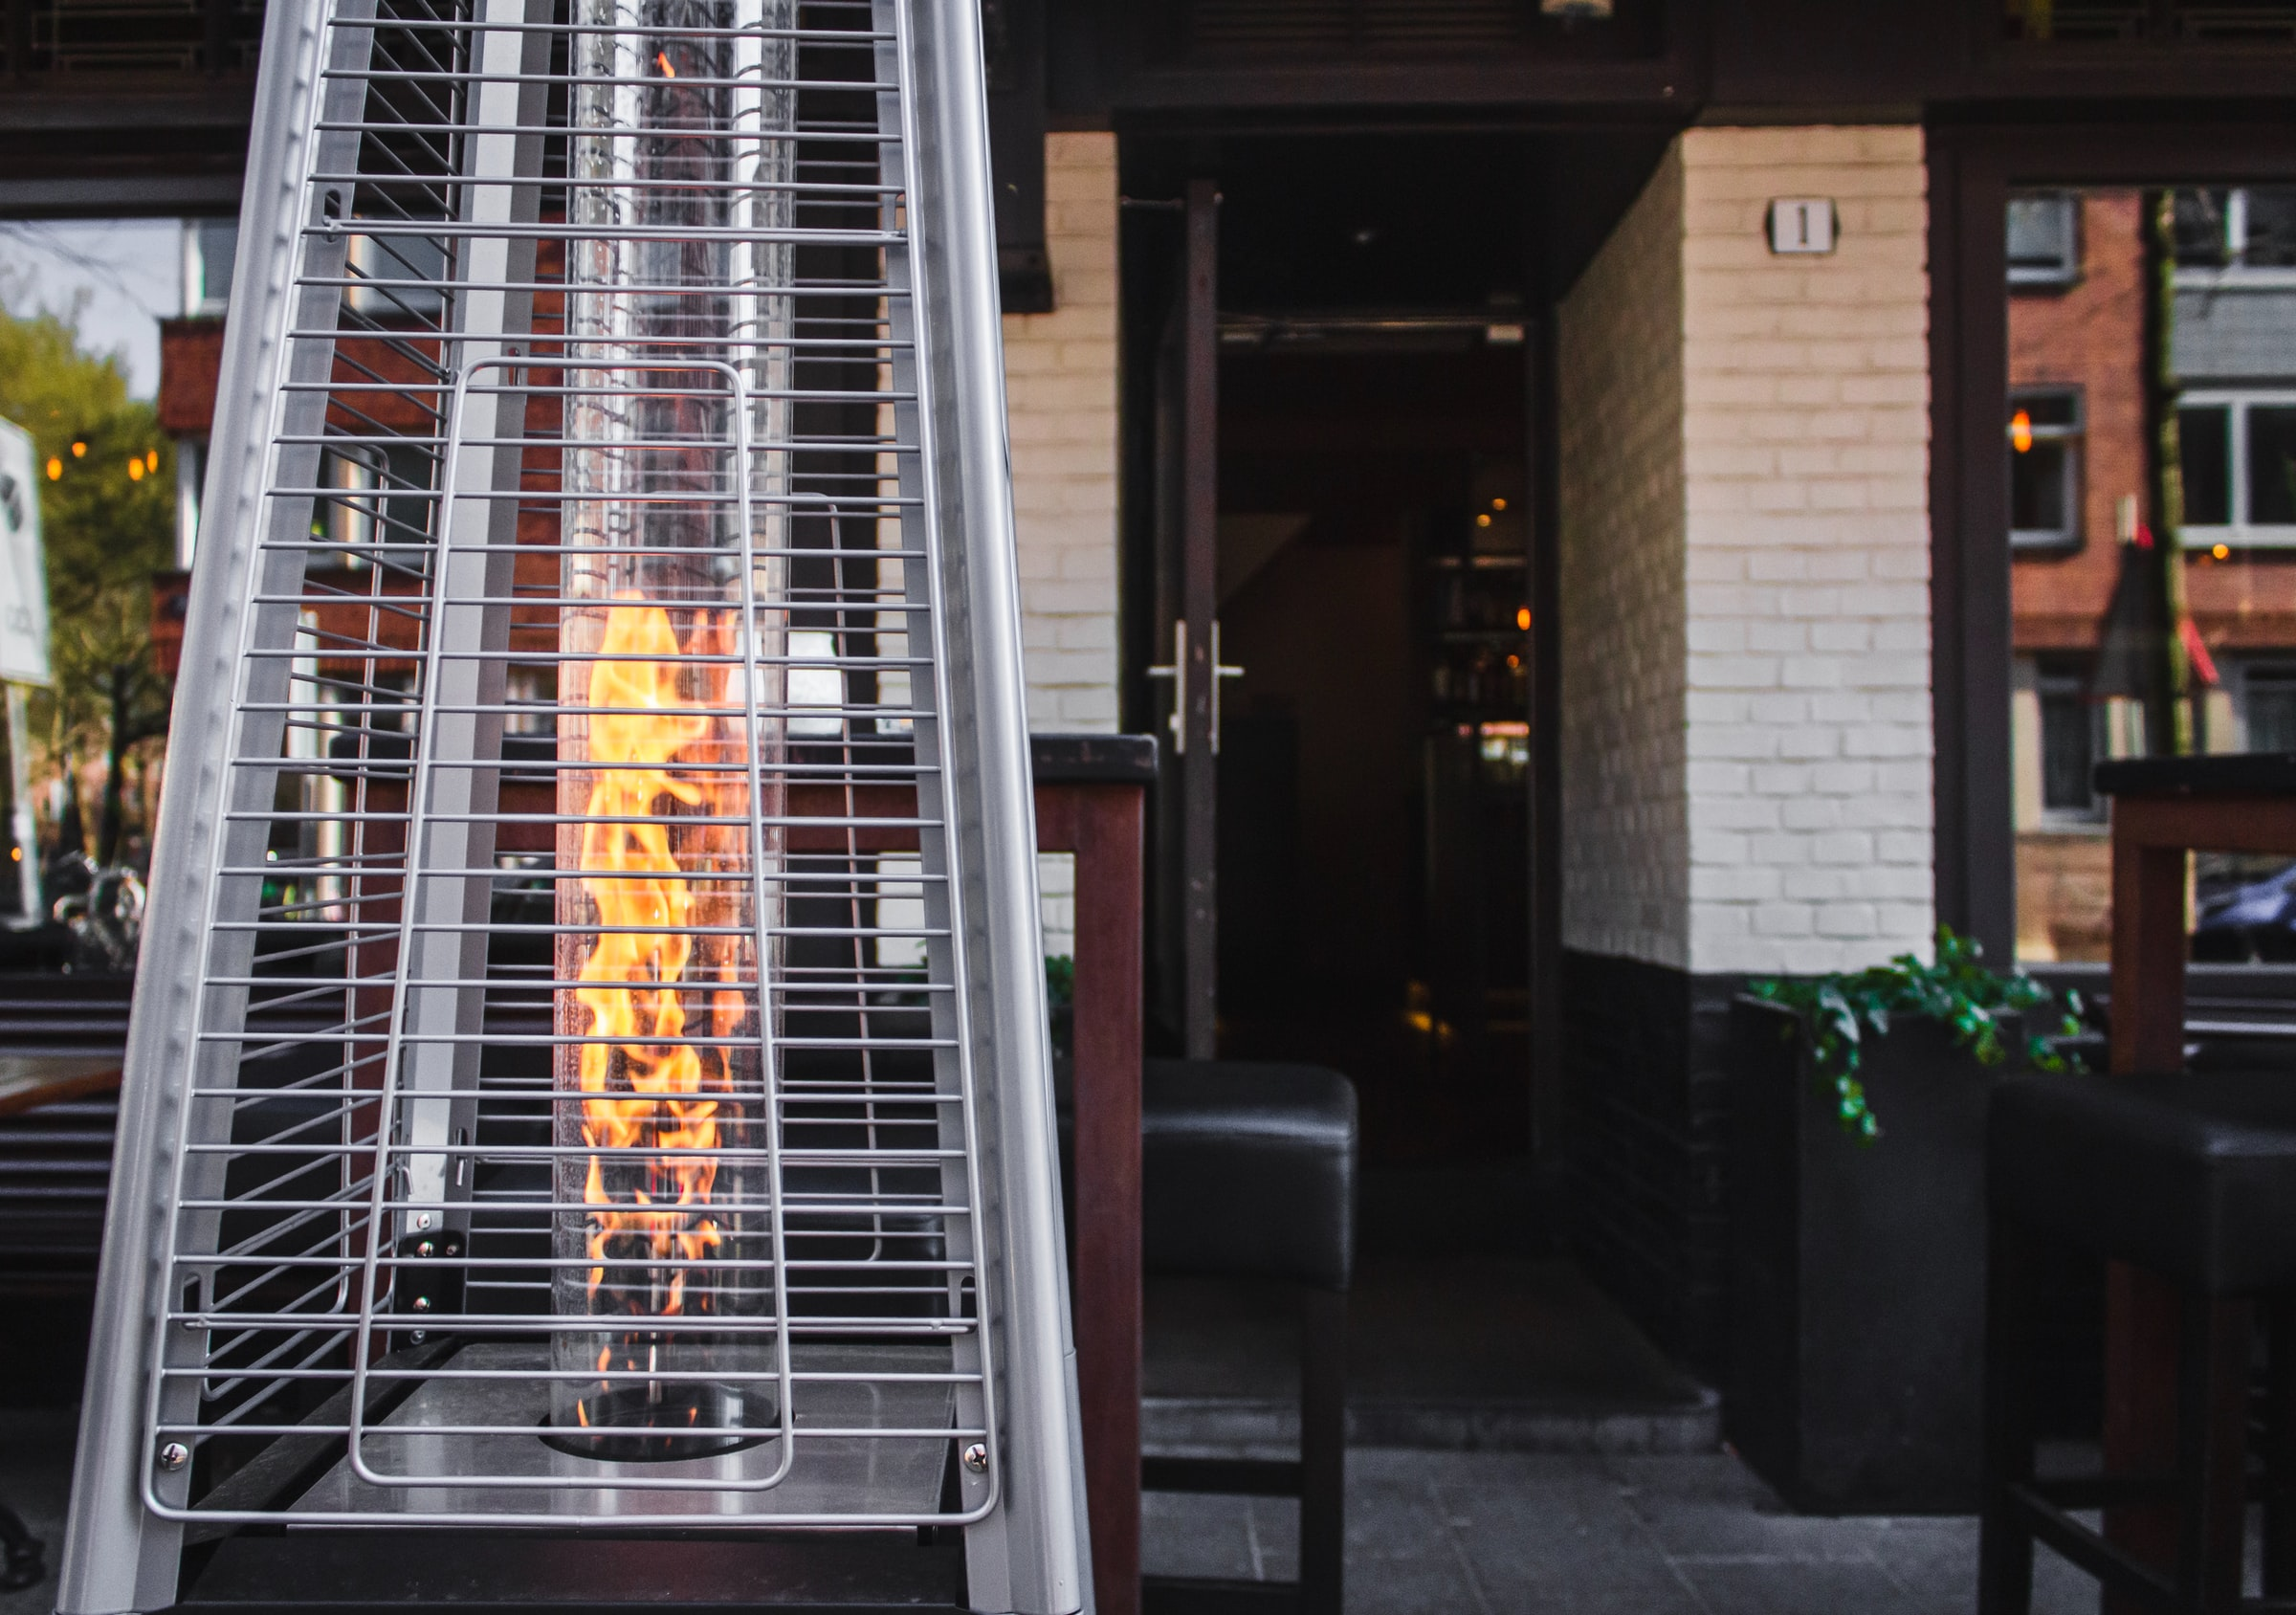 The Best Outdoor Heaters & Heat Lamps for Restaurants Doing Outdoor Dining